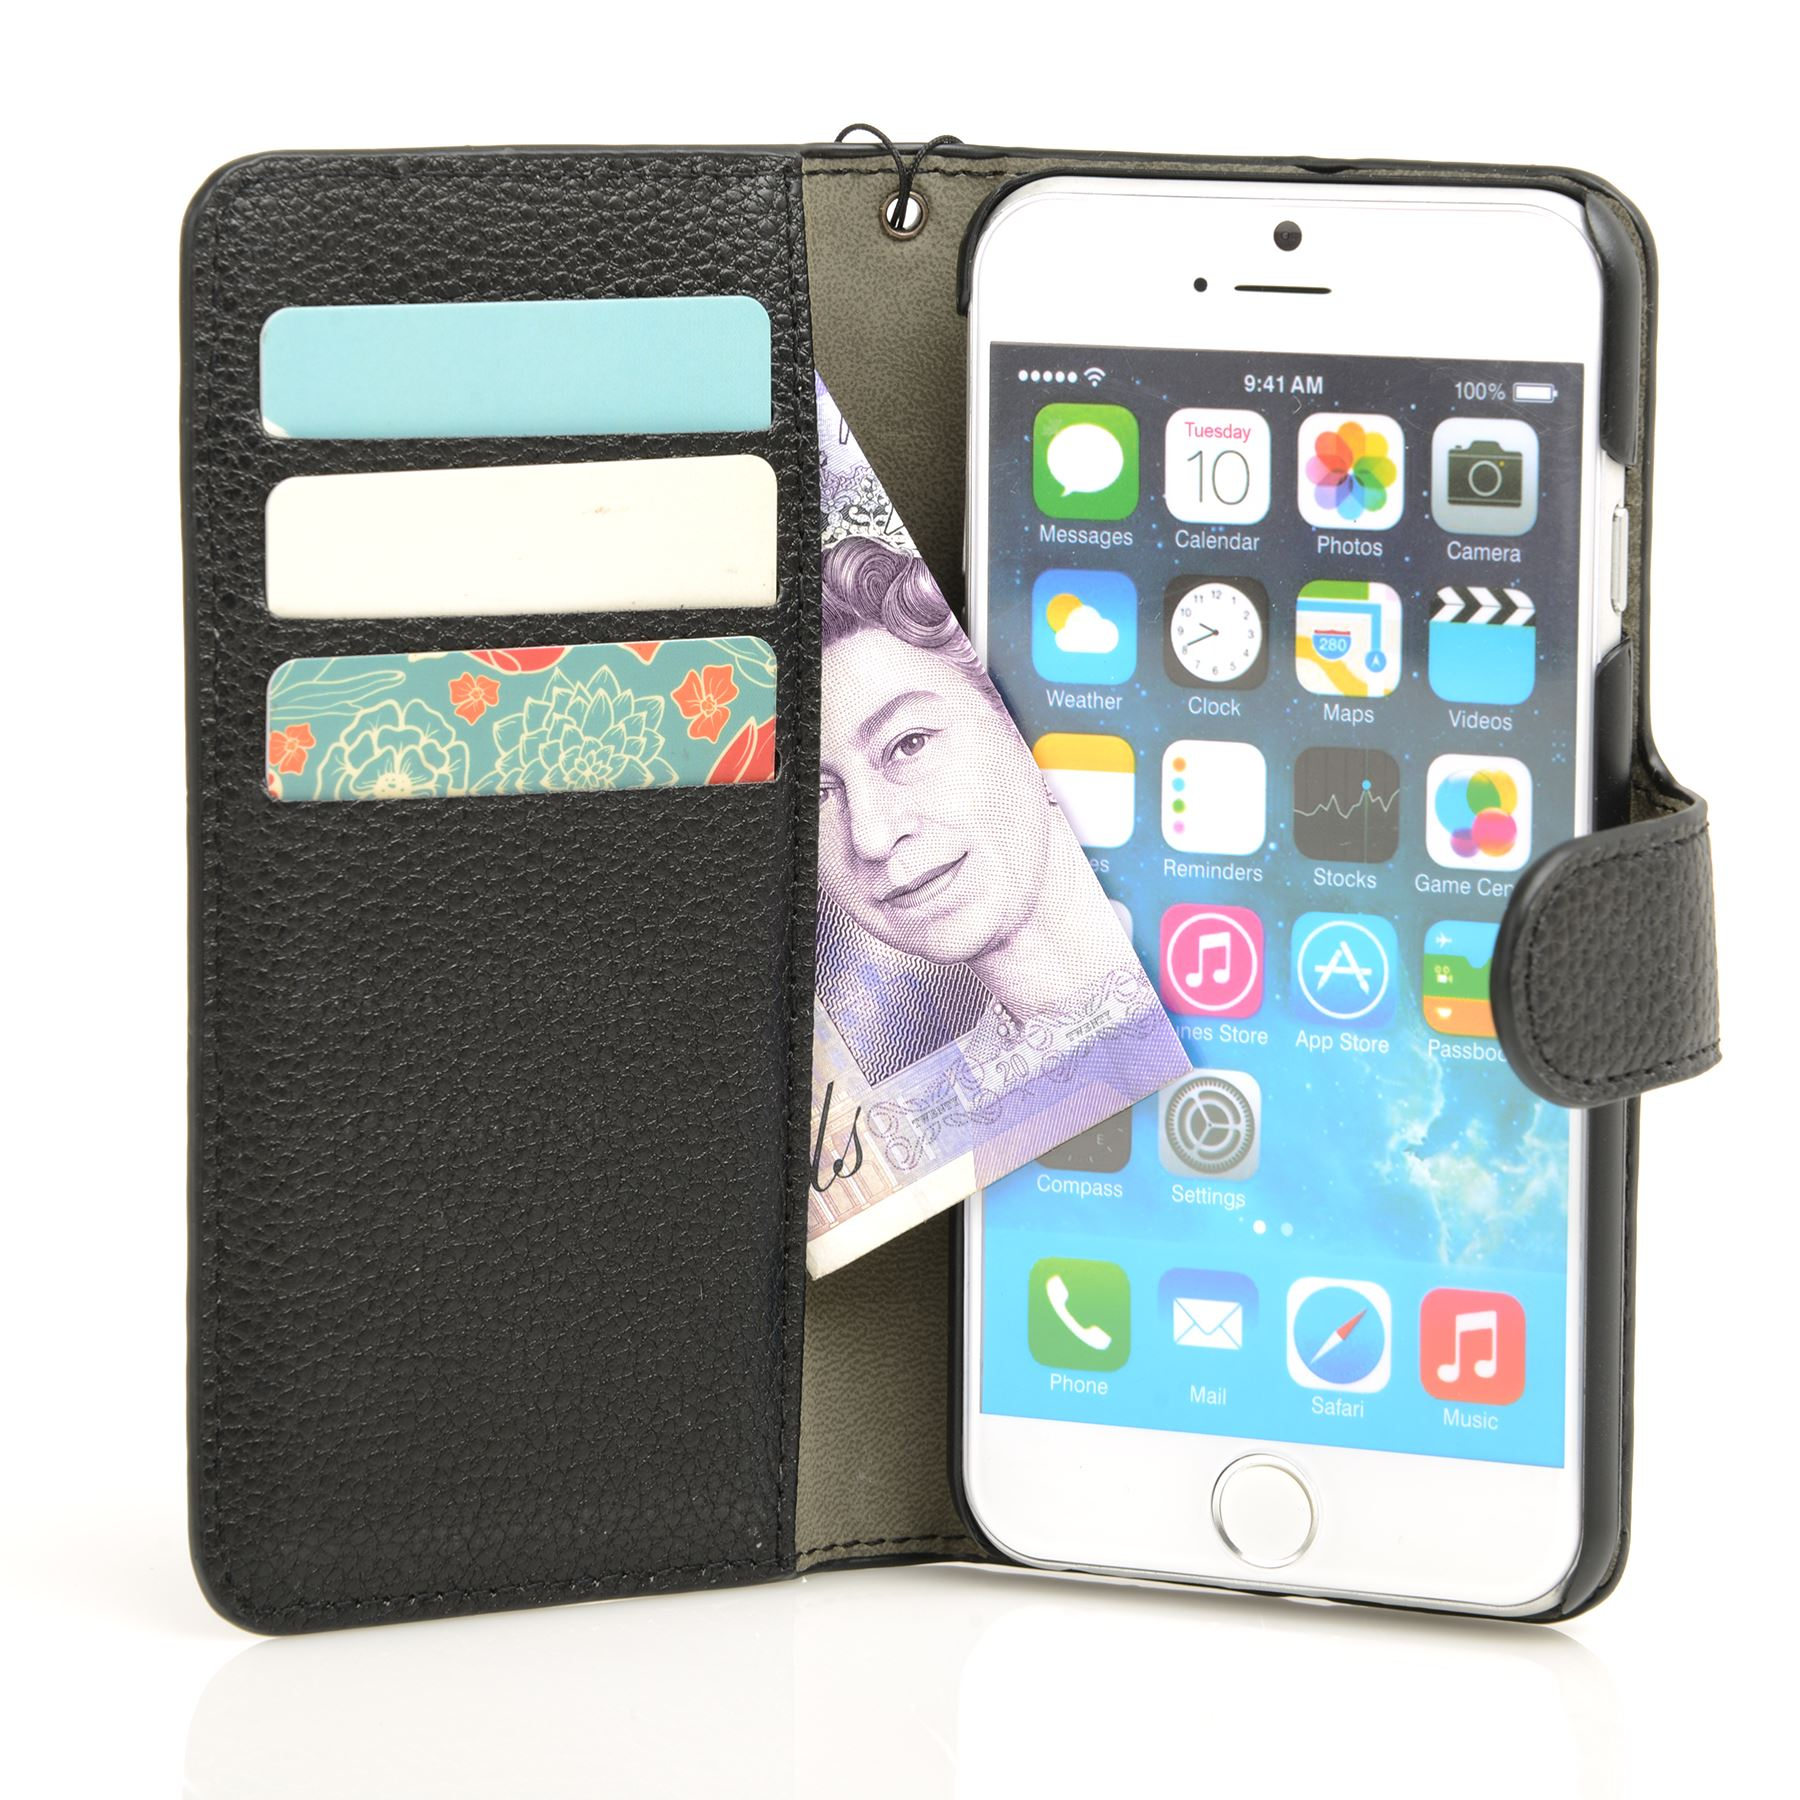 thumbnail 10 - For Apple iPhone 6s 6 Case Premium Textured Leather Wallet Madcase Cover